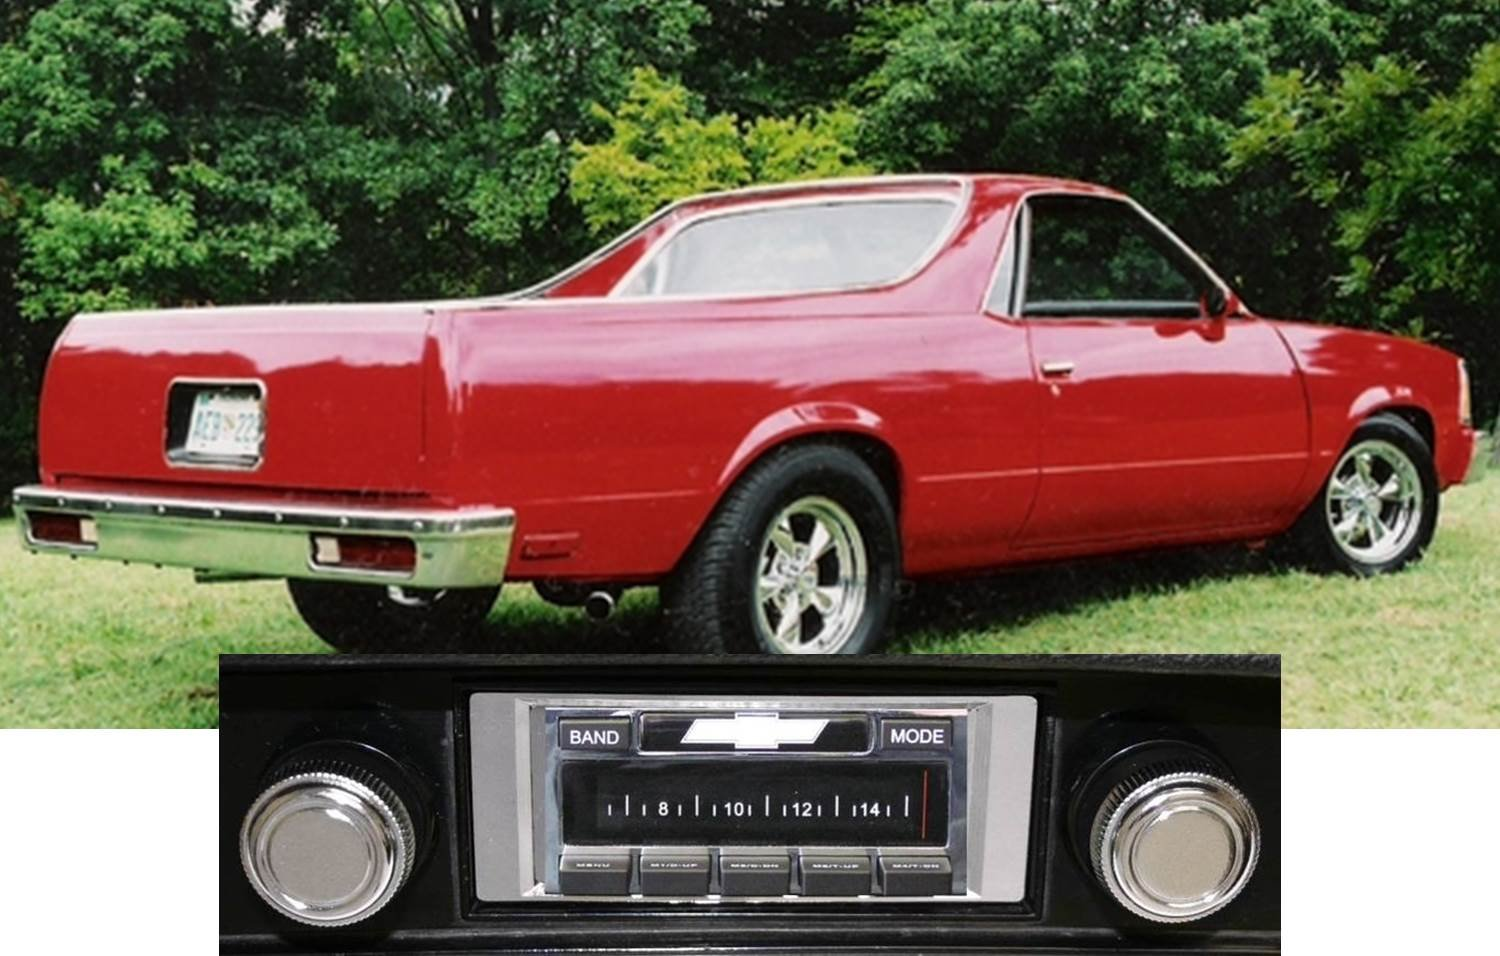 1978-1985 Chevrolet El Camino USA-630 II High Power 300 watt AM FM Car Stereo/Radio with AUX Input, USB Input, iPod Docking Cable. No modifications to original dash required.